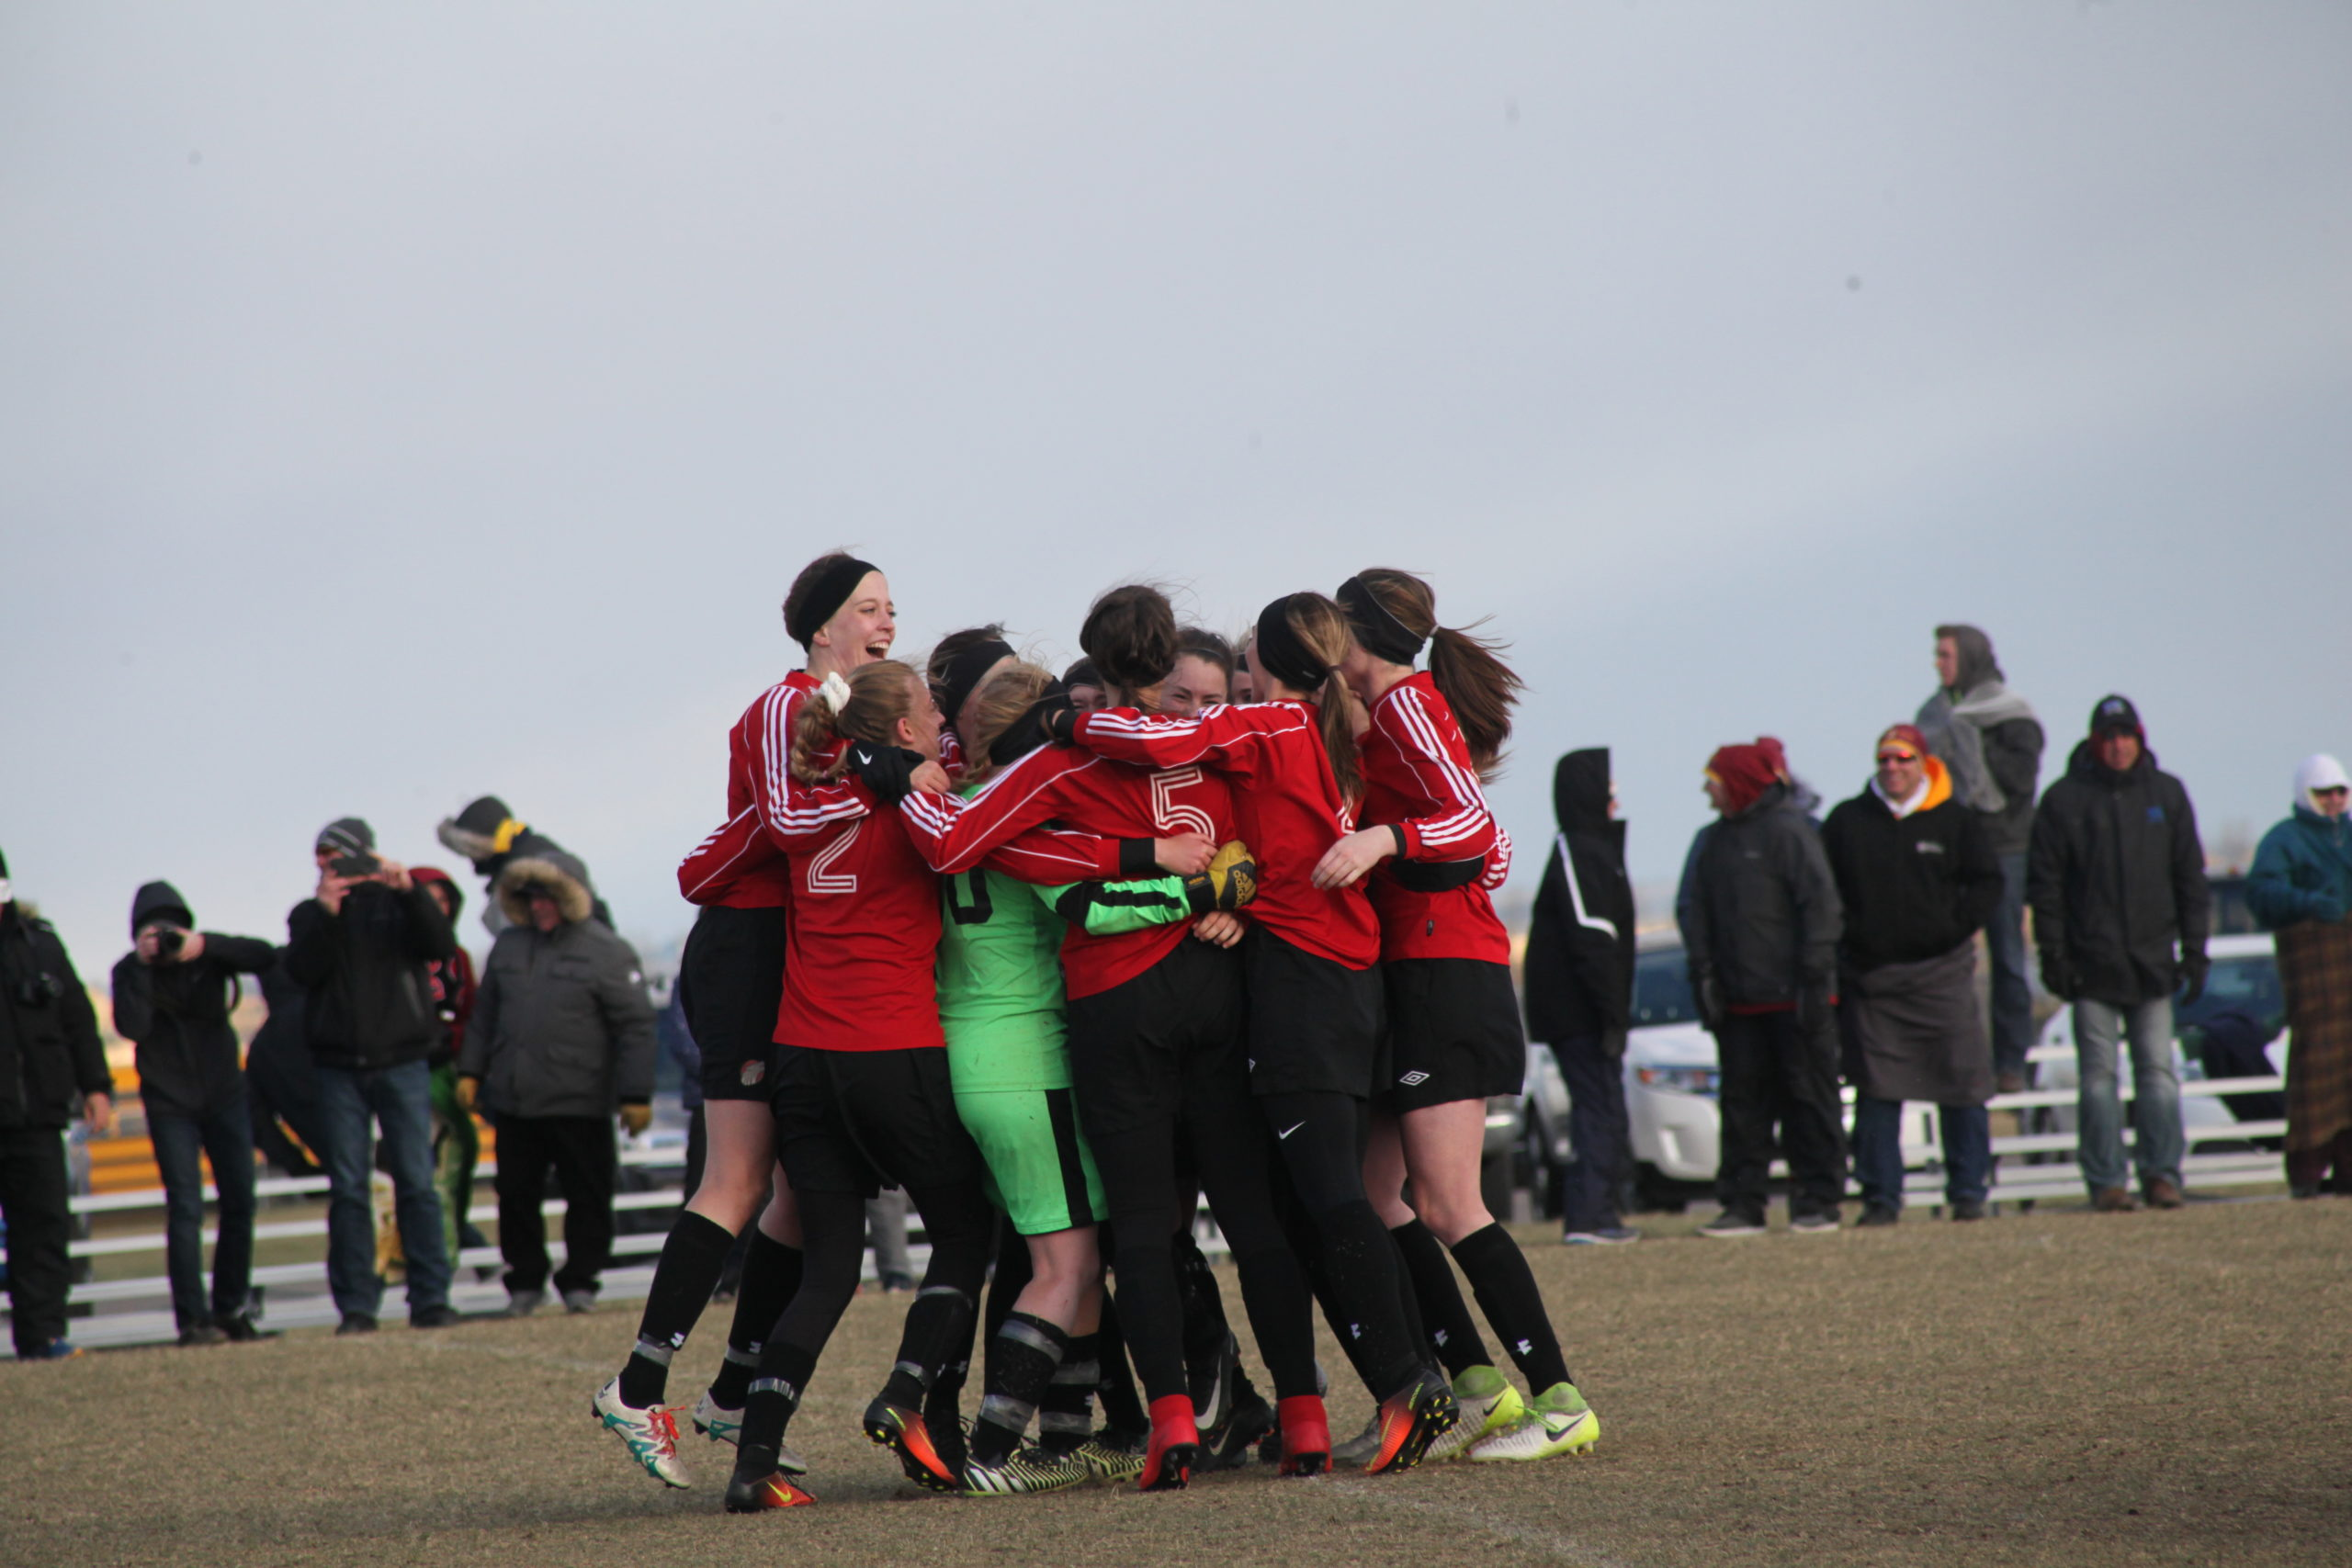 GPRC Women's soccer squad prepping for nationals